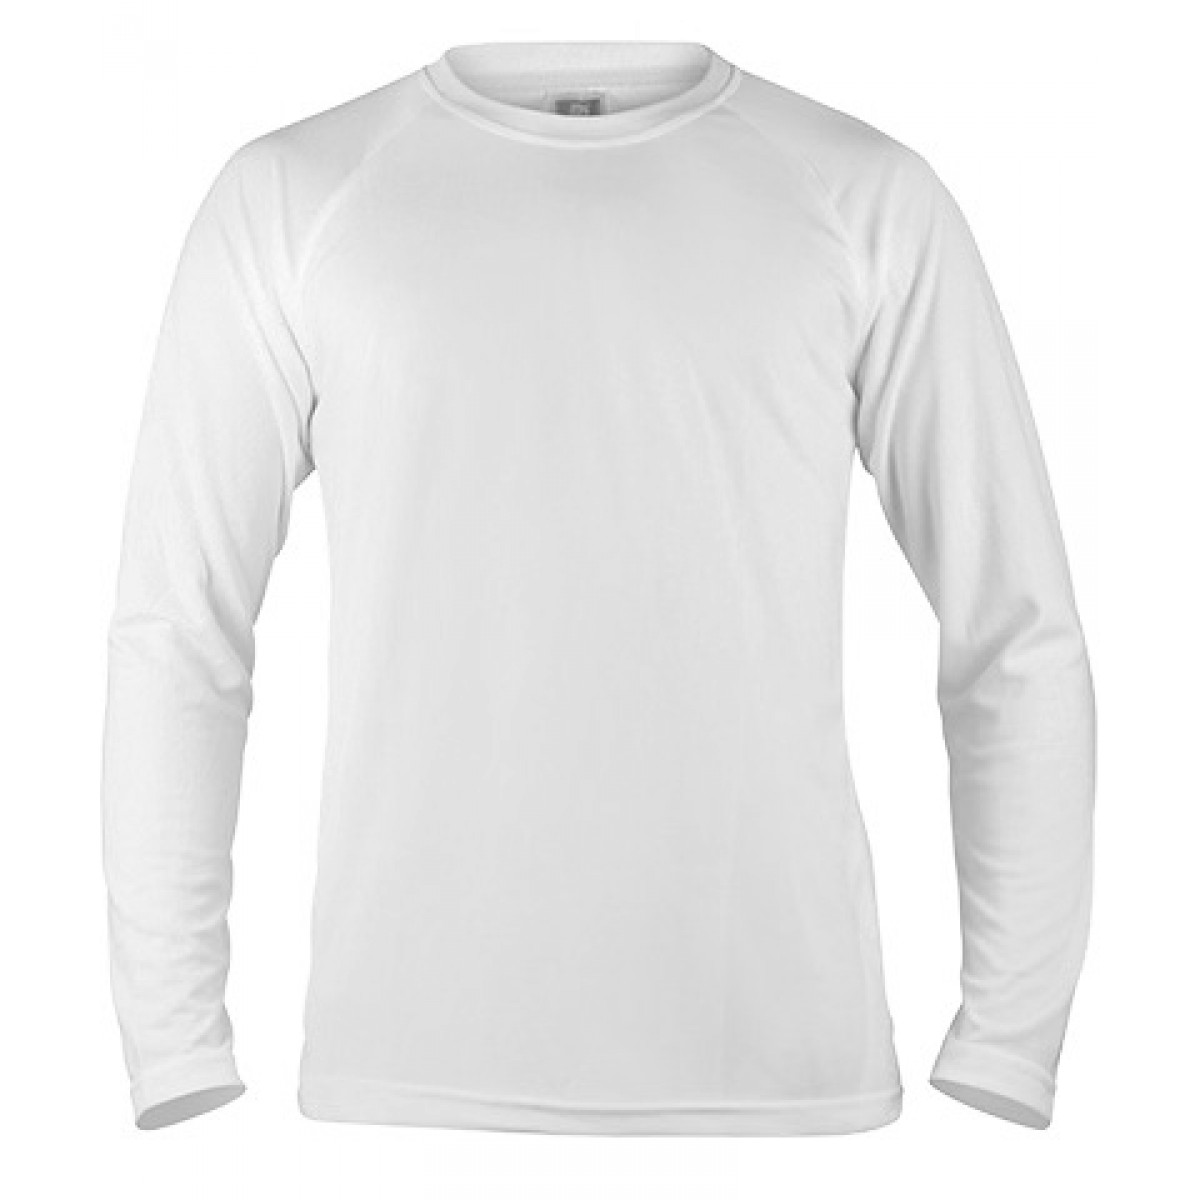 Long Sleeve Mesh Performance T-shirt-White-XL